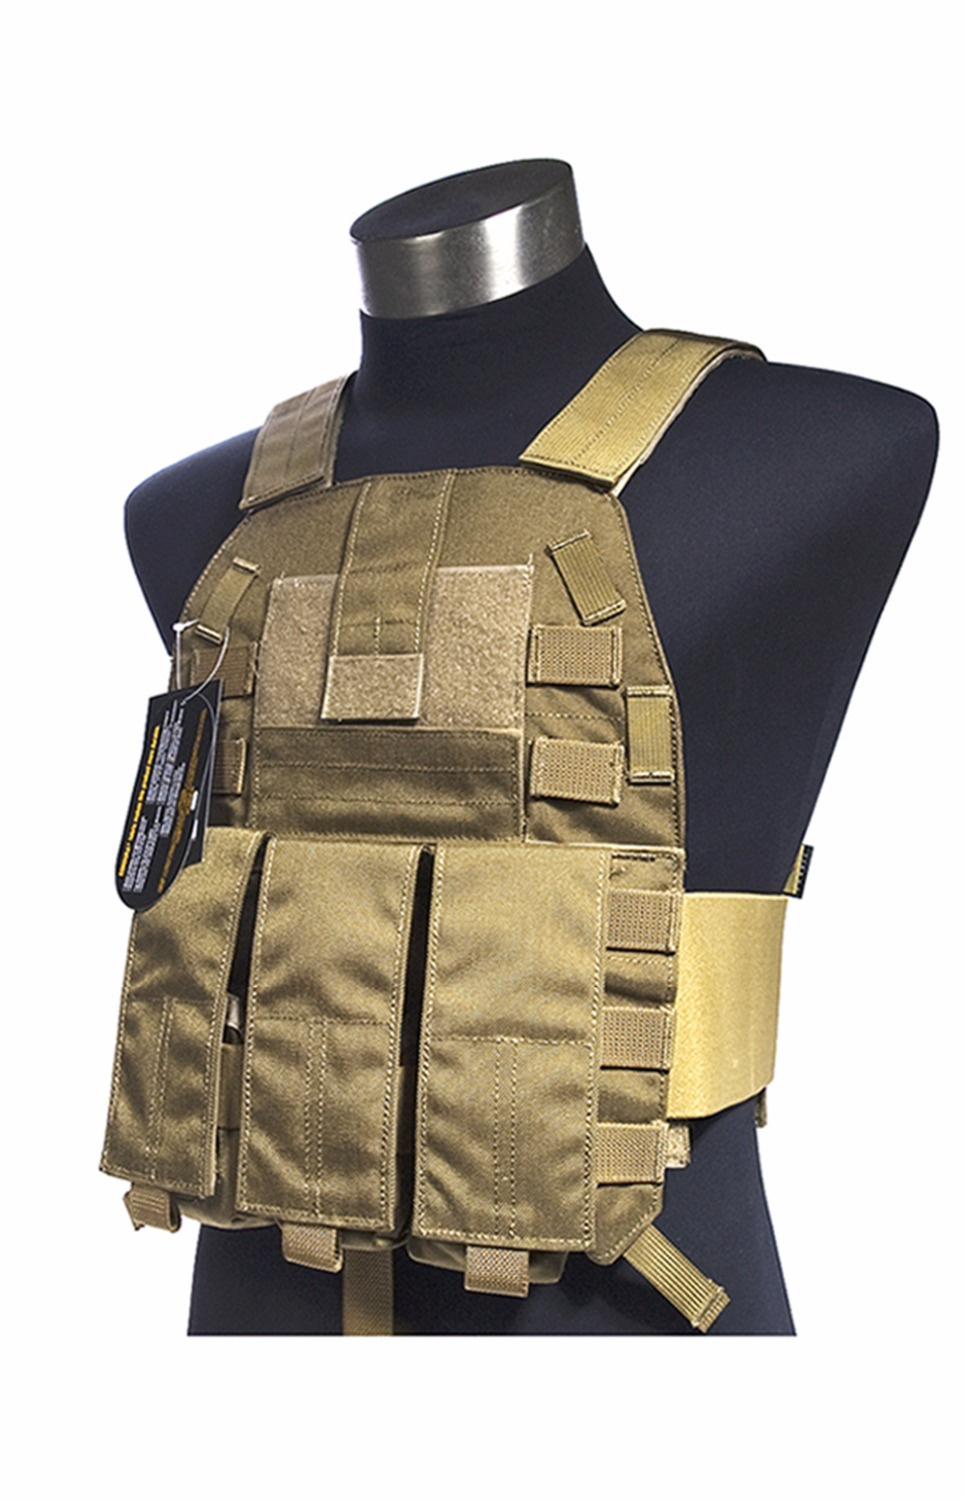 MILITECH Mil Spec Military LT6094K Coyote Brown CB Plate Carrier Combat Molle Tactical Vest Army Military Combat Vests Carrier 97 3102a 36 10s 604 circular mil spec recept mr li